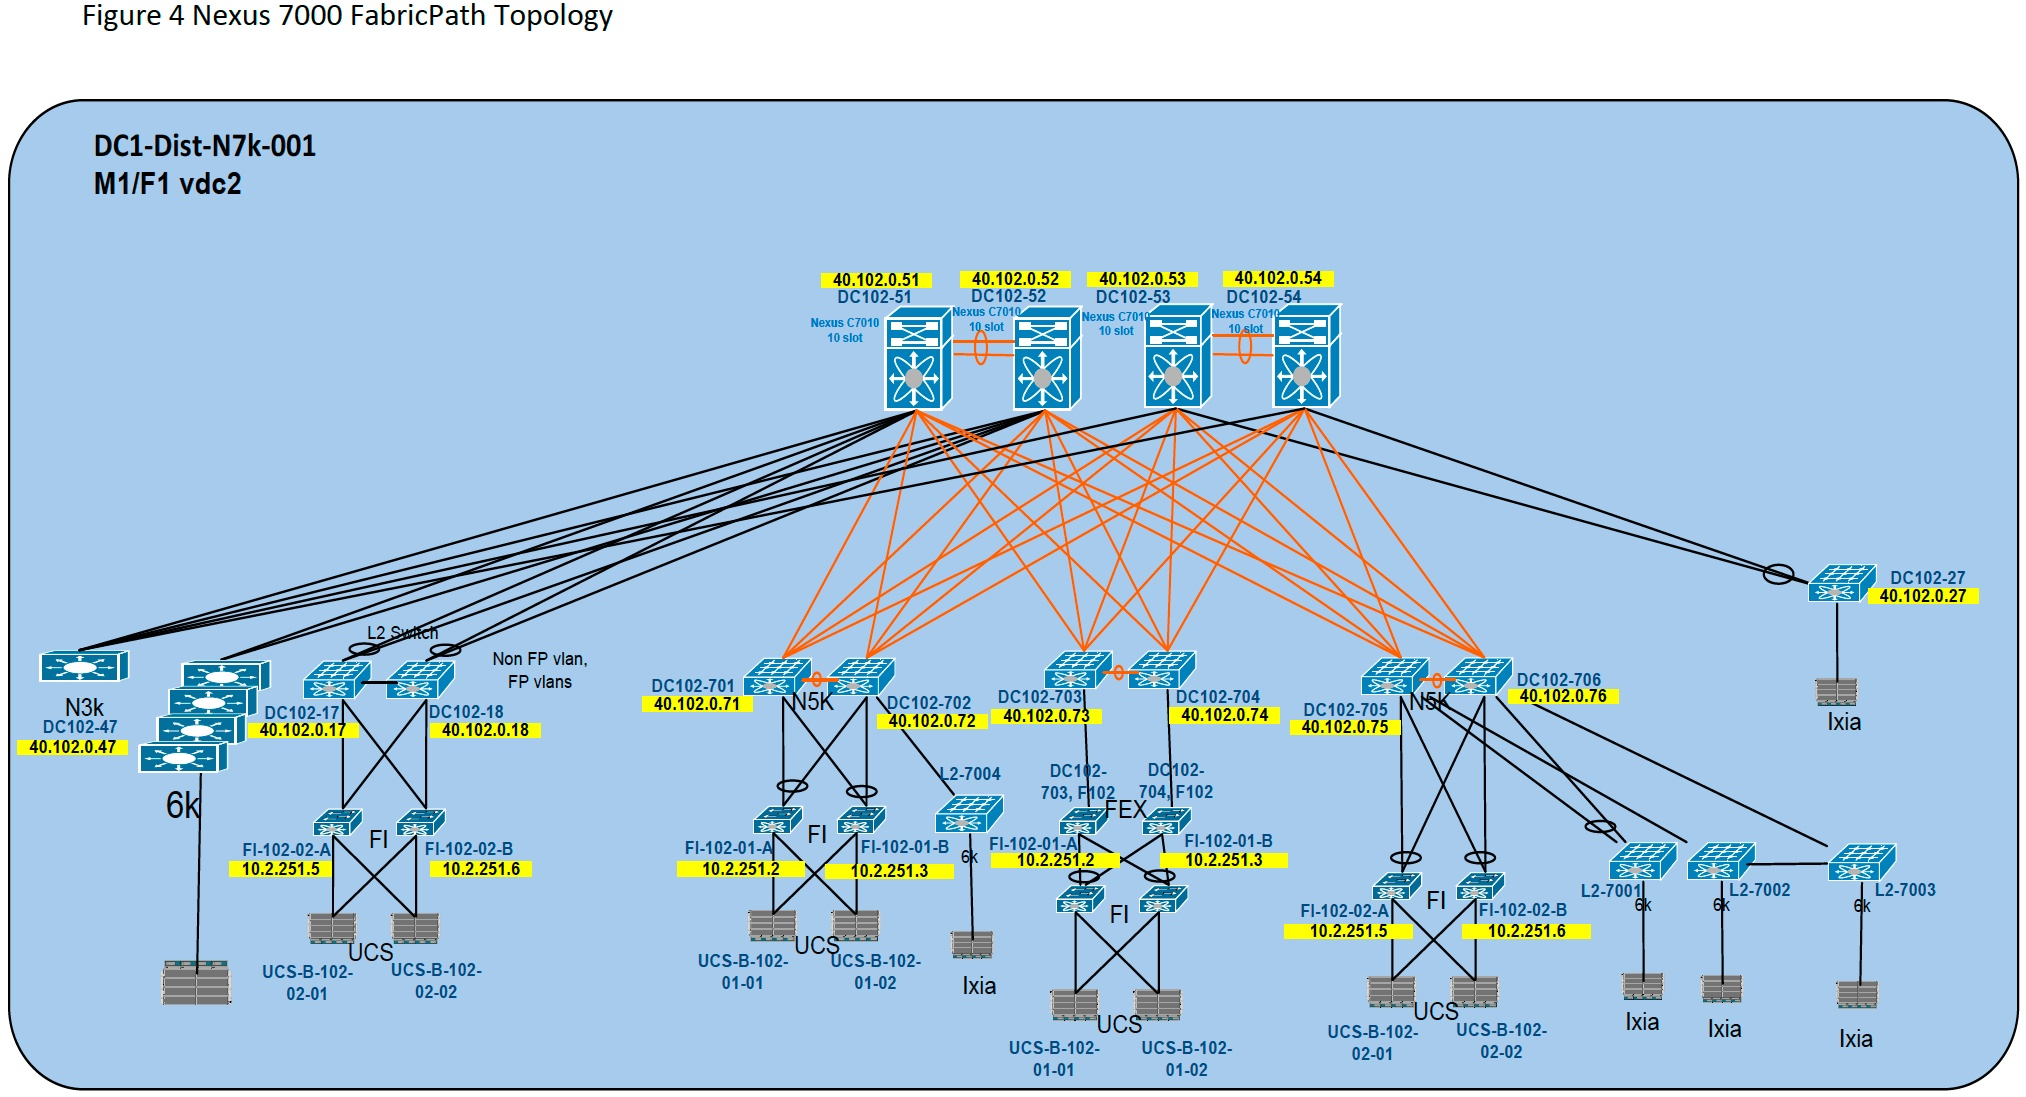 Computer Network Administrator Network Topology Design Software